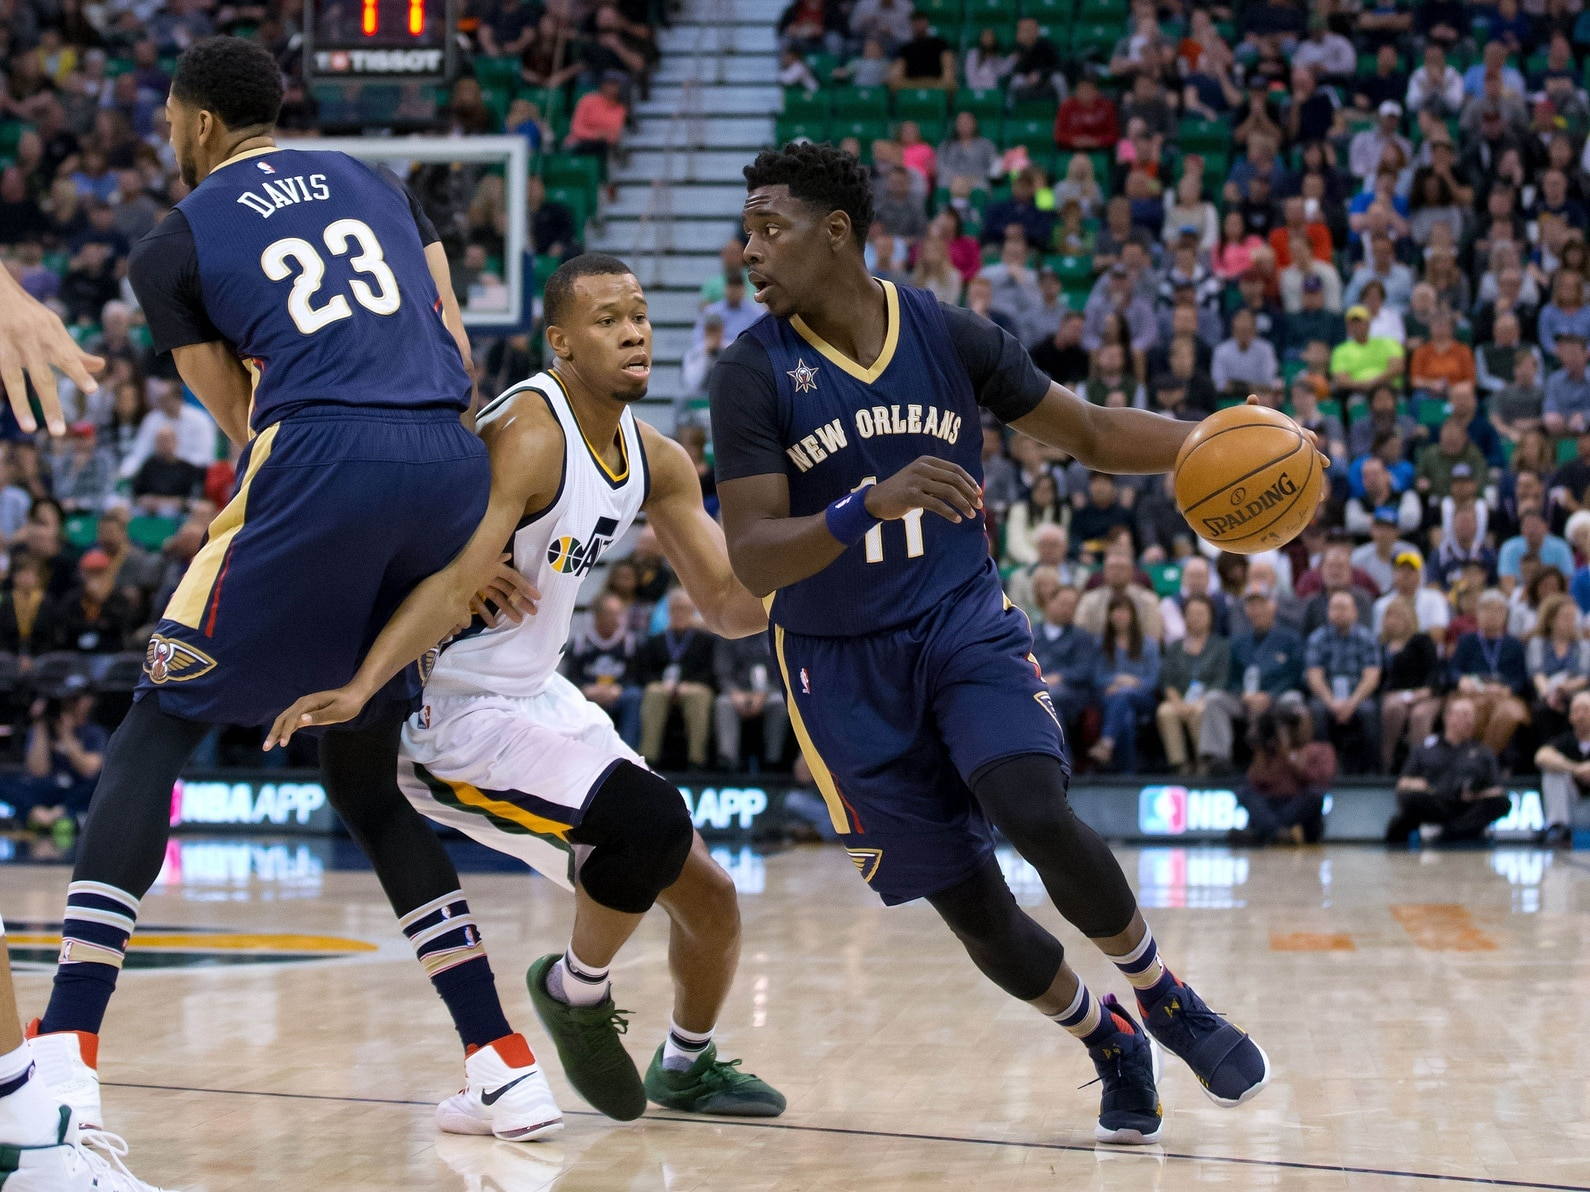 Caption: Mar 27, 2017; Salt Lake City, UT, USA; Utah Jazz guard Rodney Hood (5) fights around the screen of New Orleans Pelicans forward Anthony Davis (23) while defending guard Jrue Holiday (11) during the first quarter at Vivint Smart Home Arena. Mandatory Credit: Russ Isabella-USA TODAY Sports